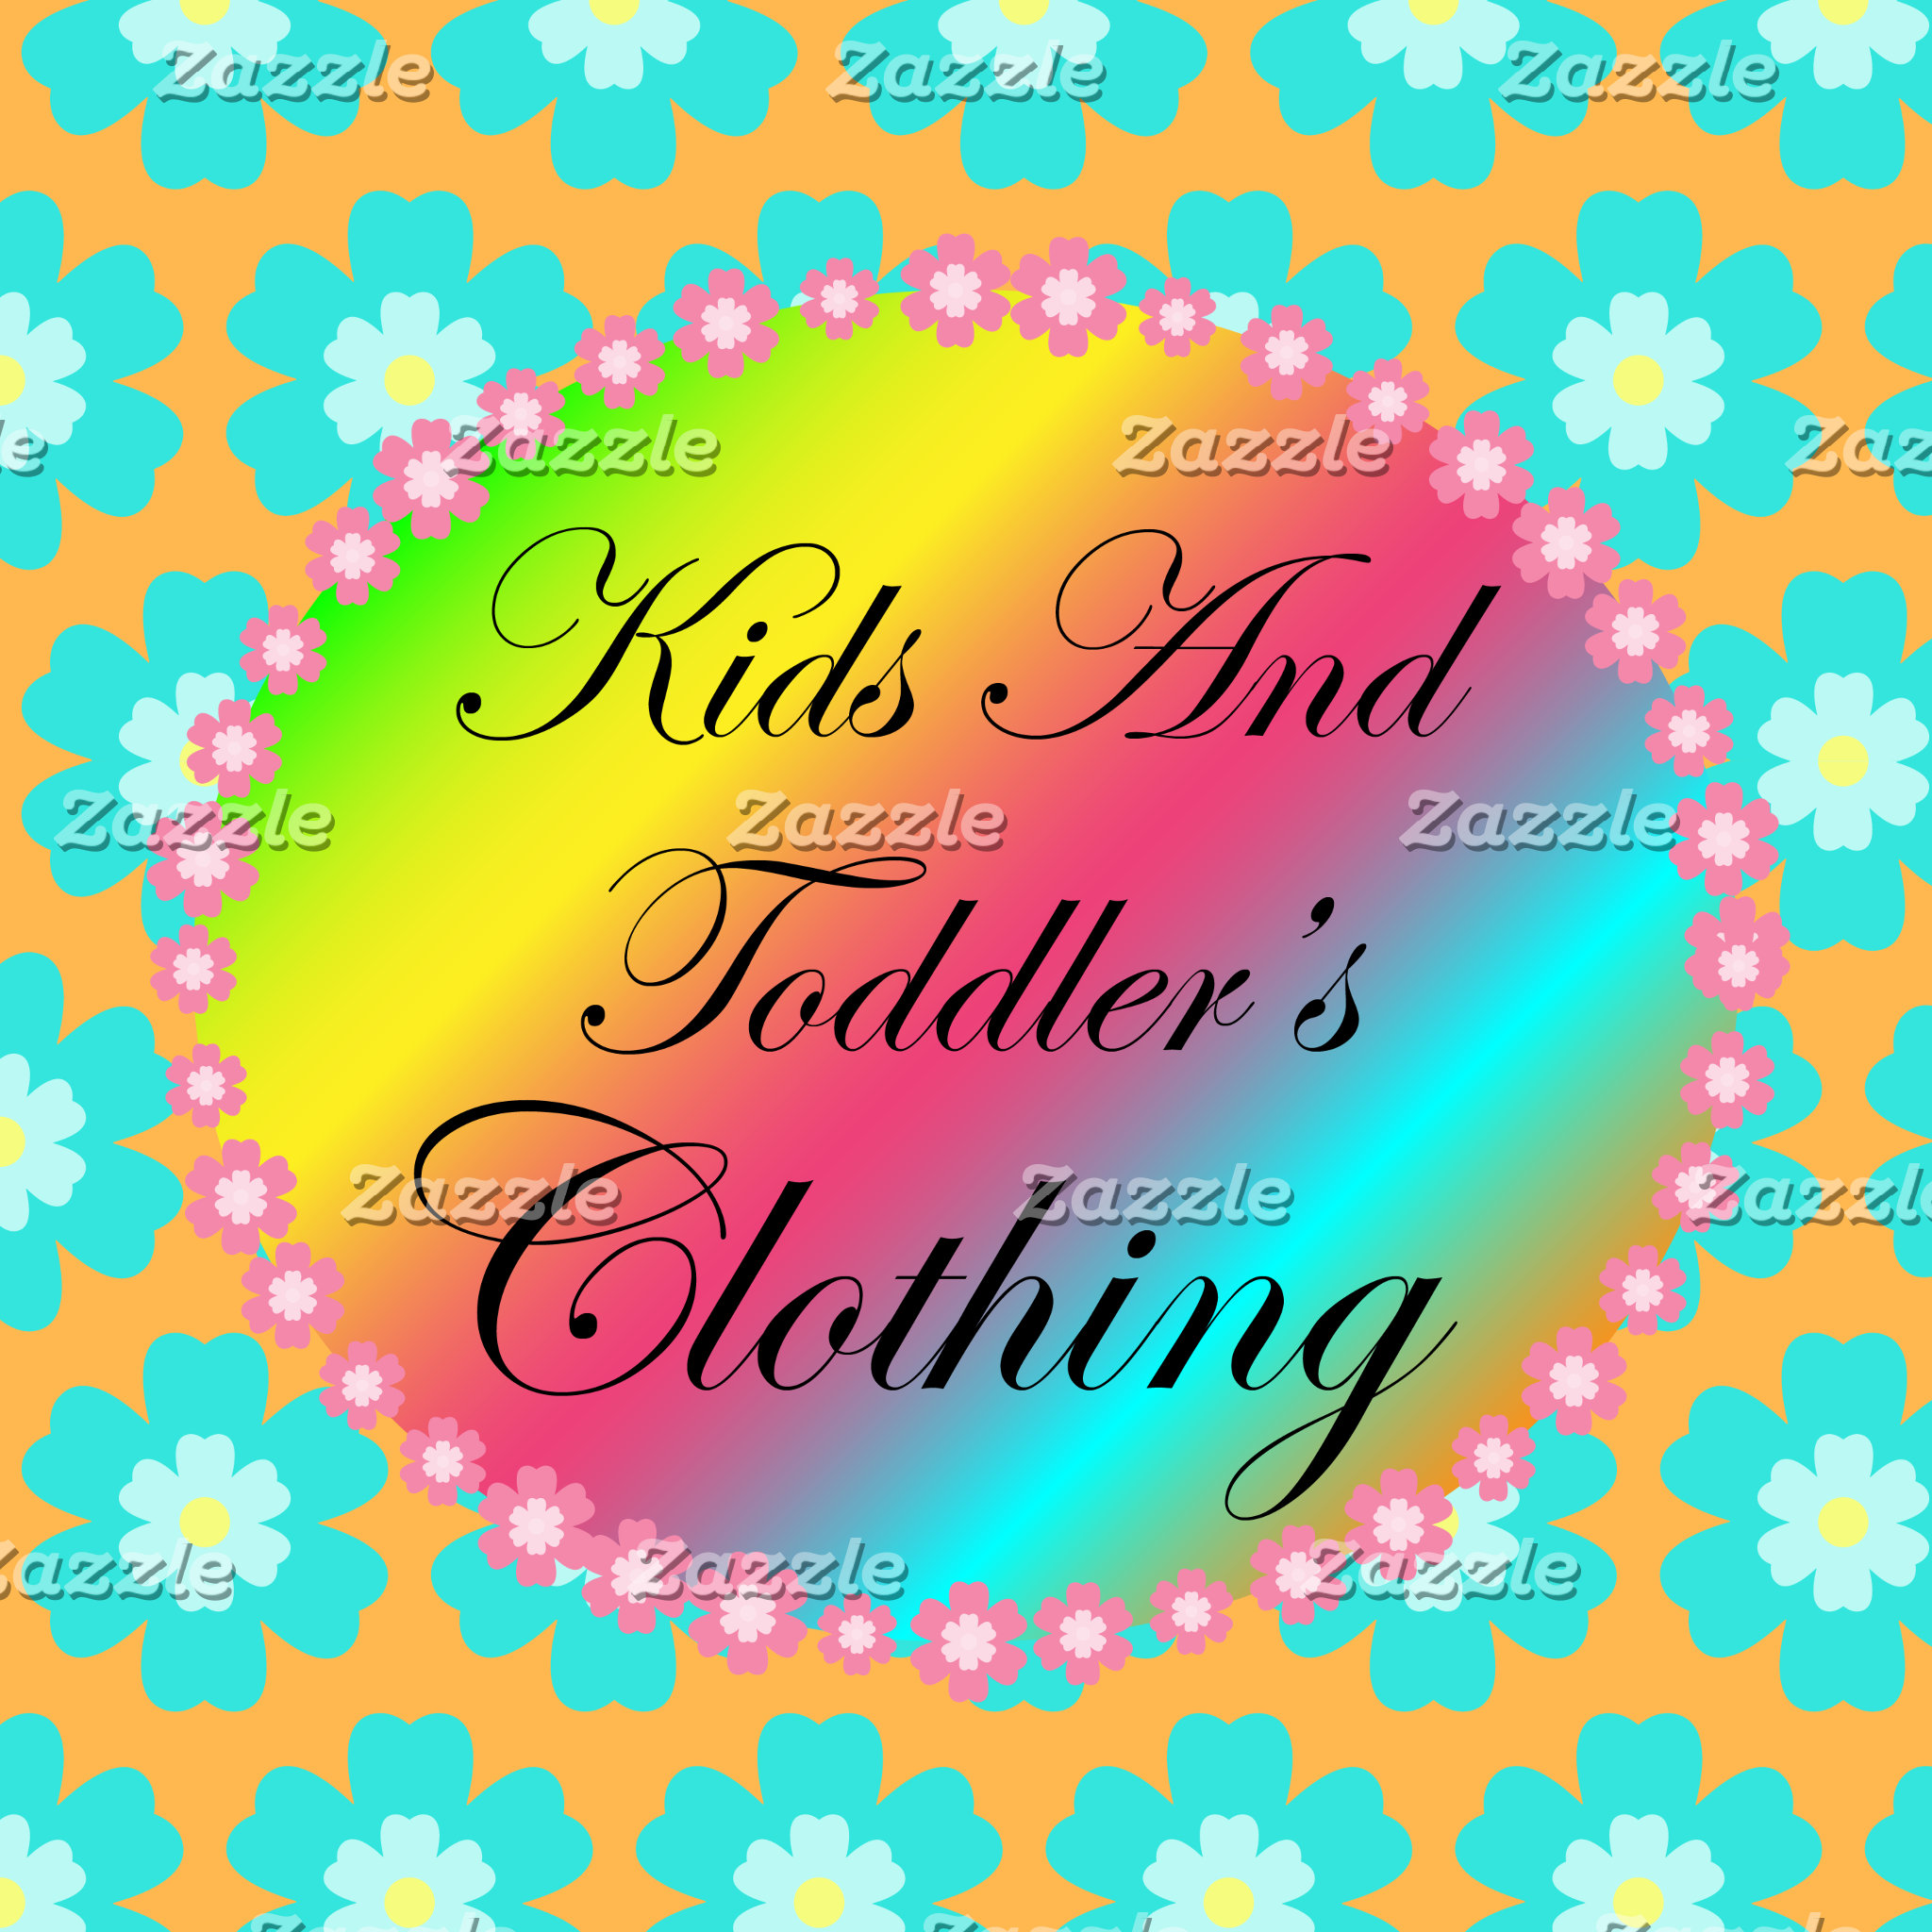 06. Kids And Toddler's Clothing